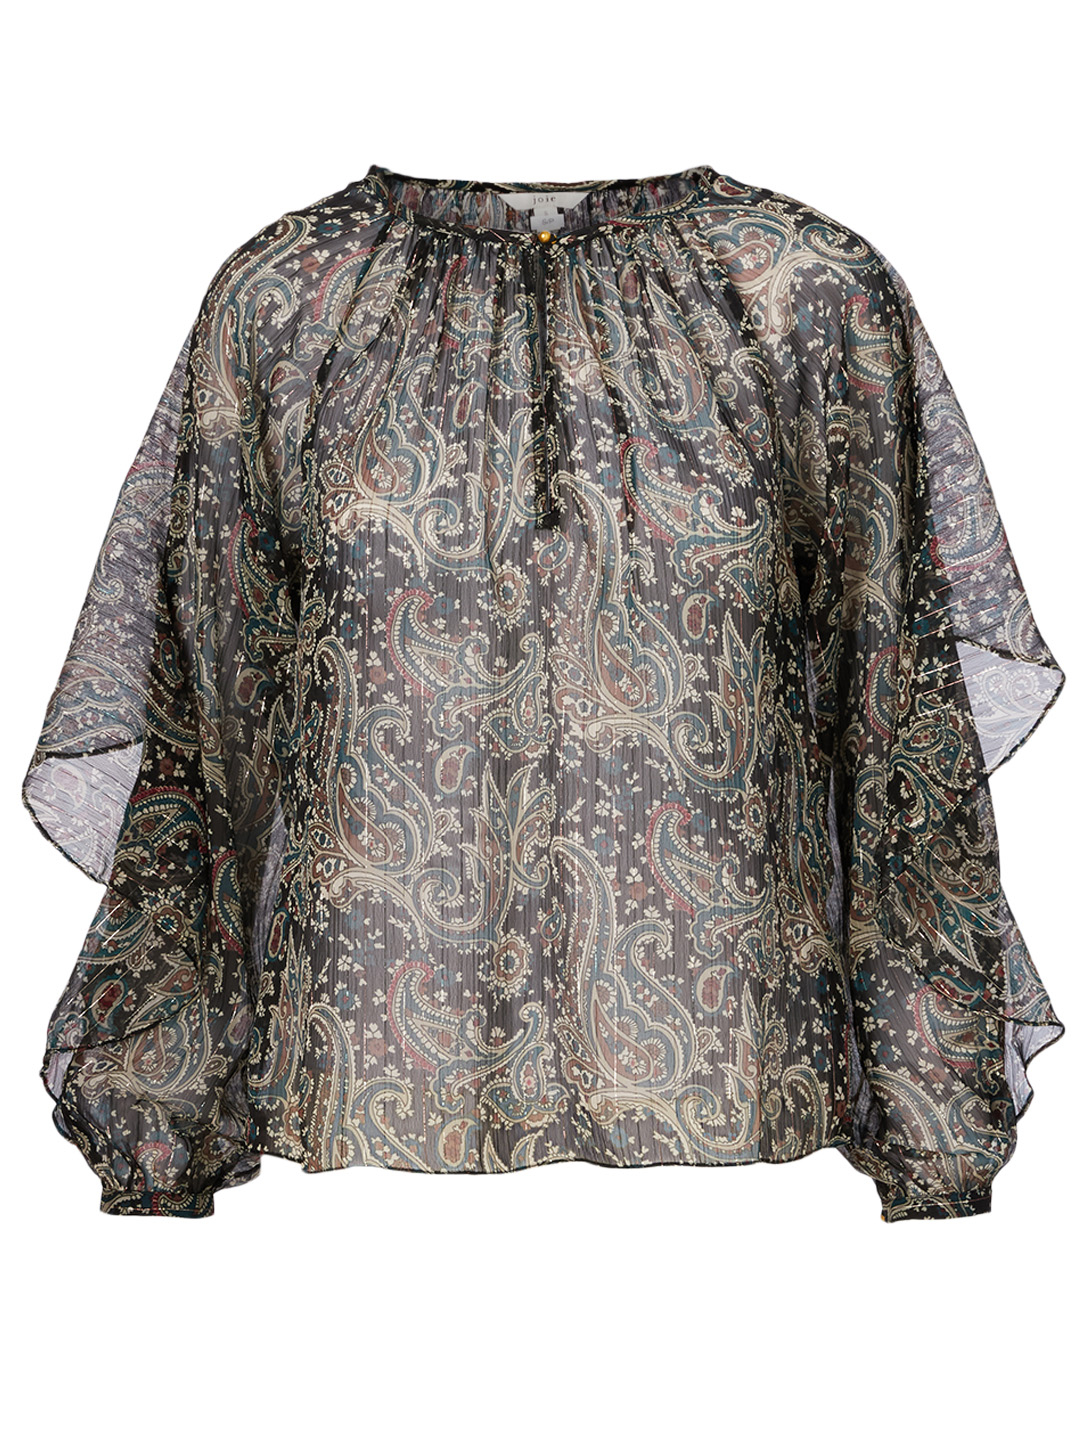 JOIE Kriston Printed Blouse Women's Black